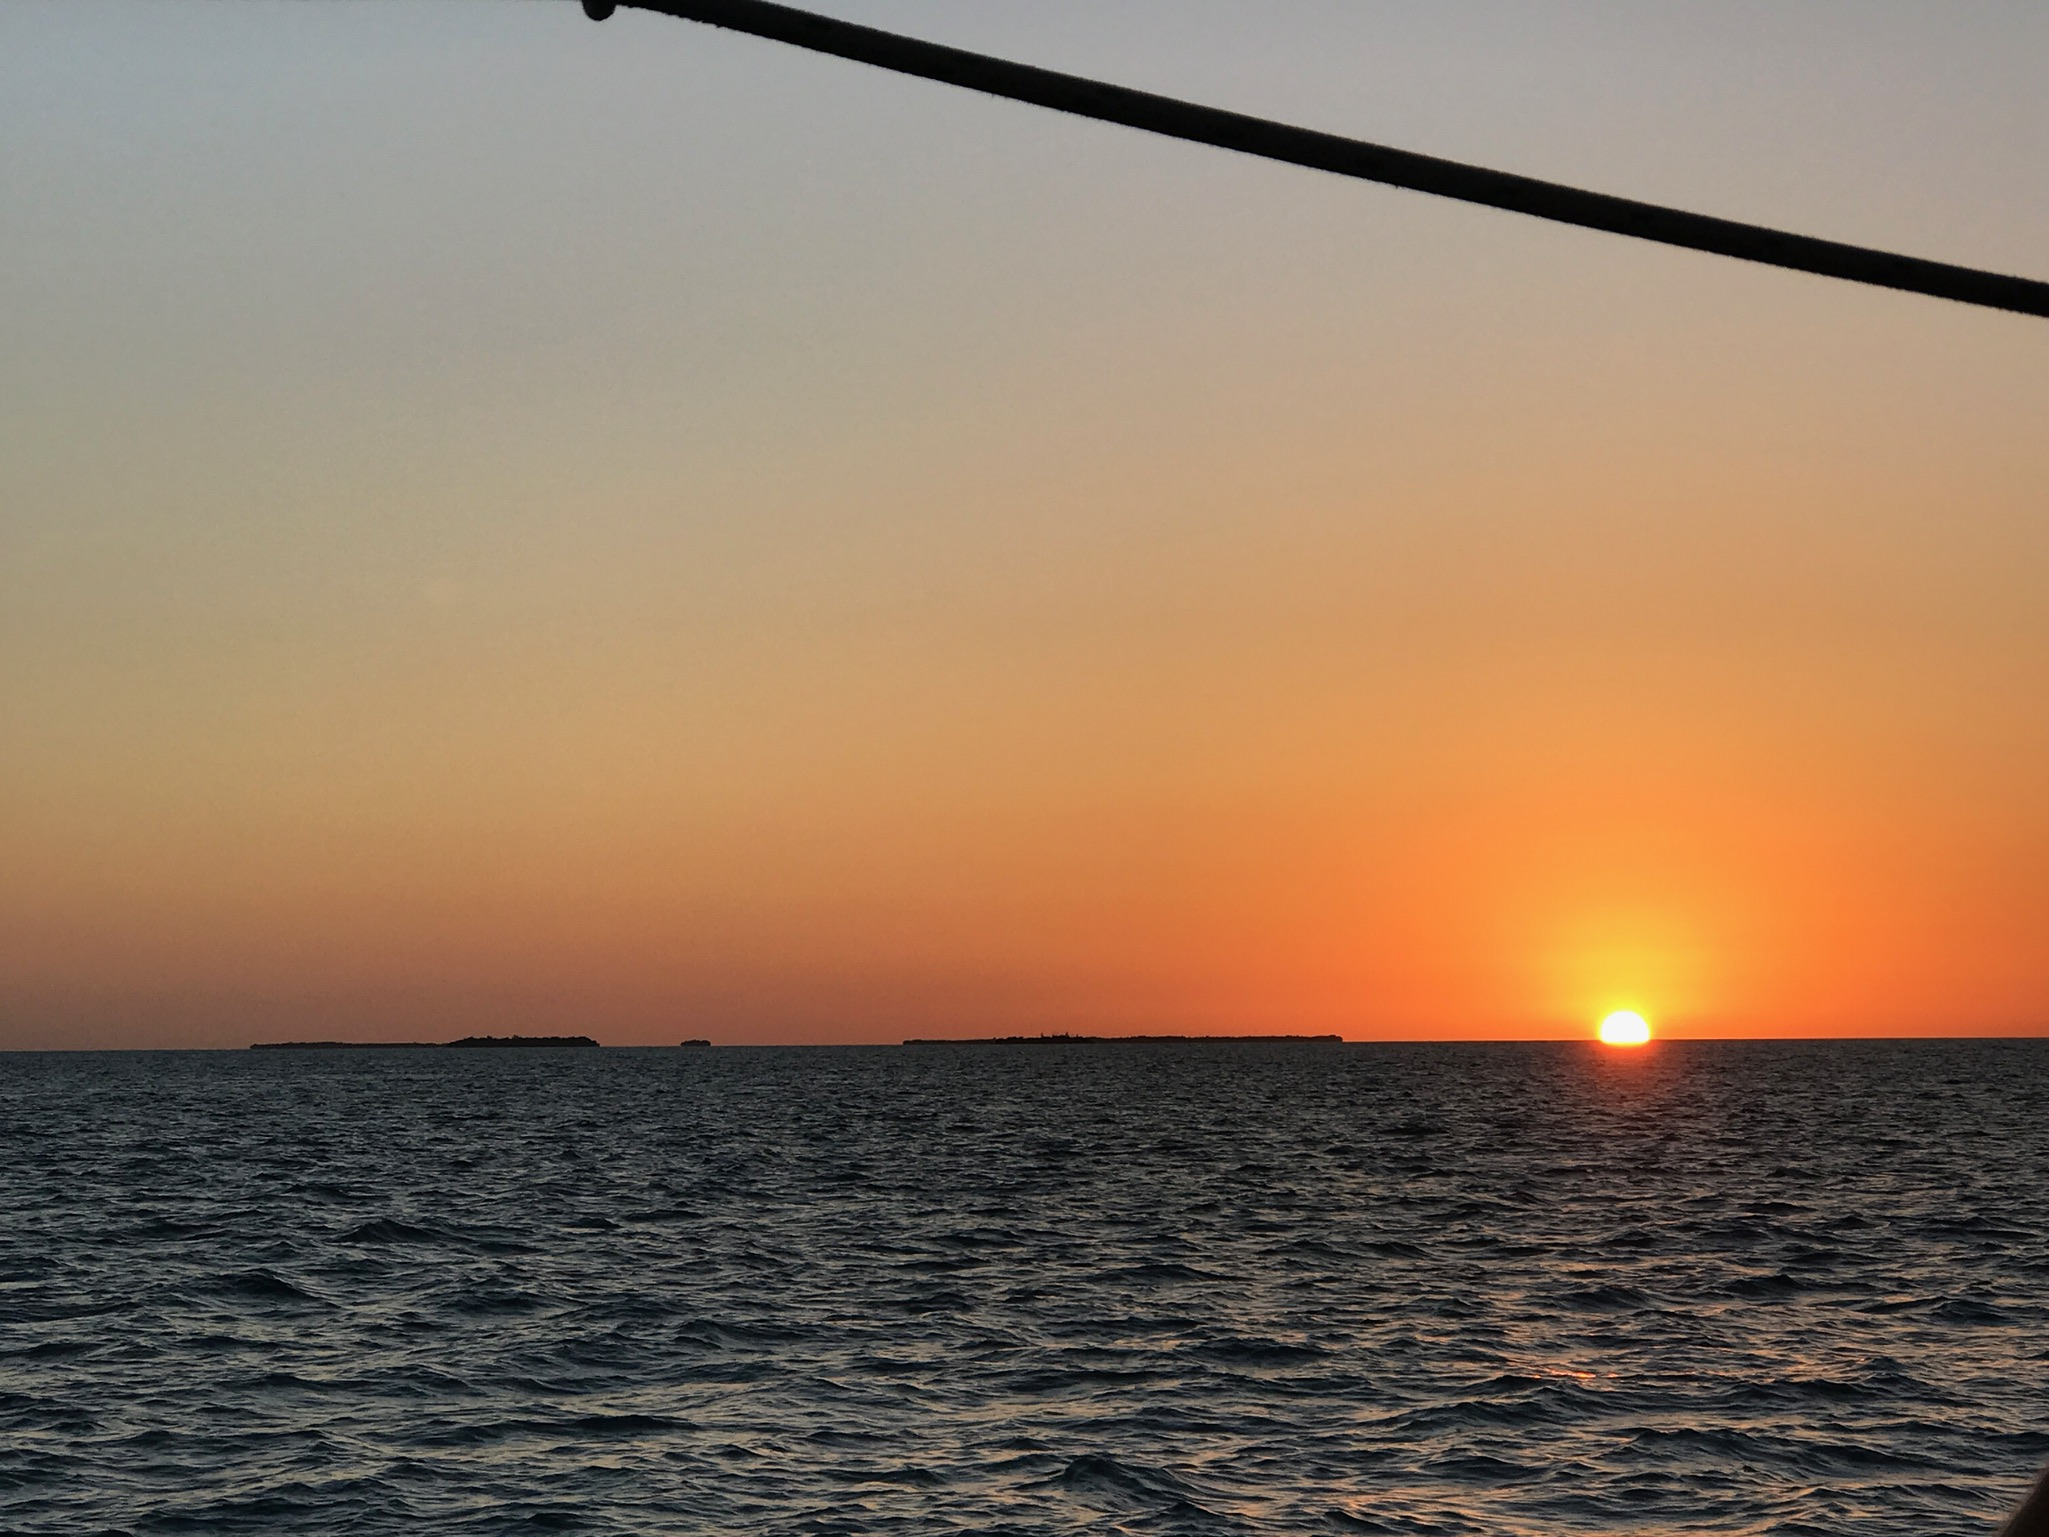 Taken while on a sunset sail on the America 2.